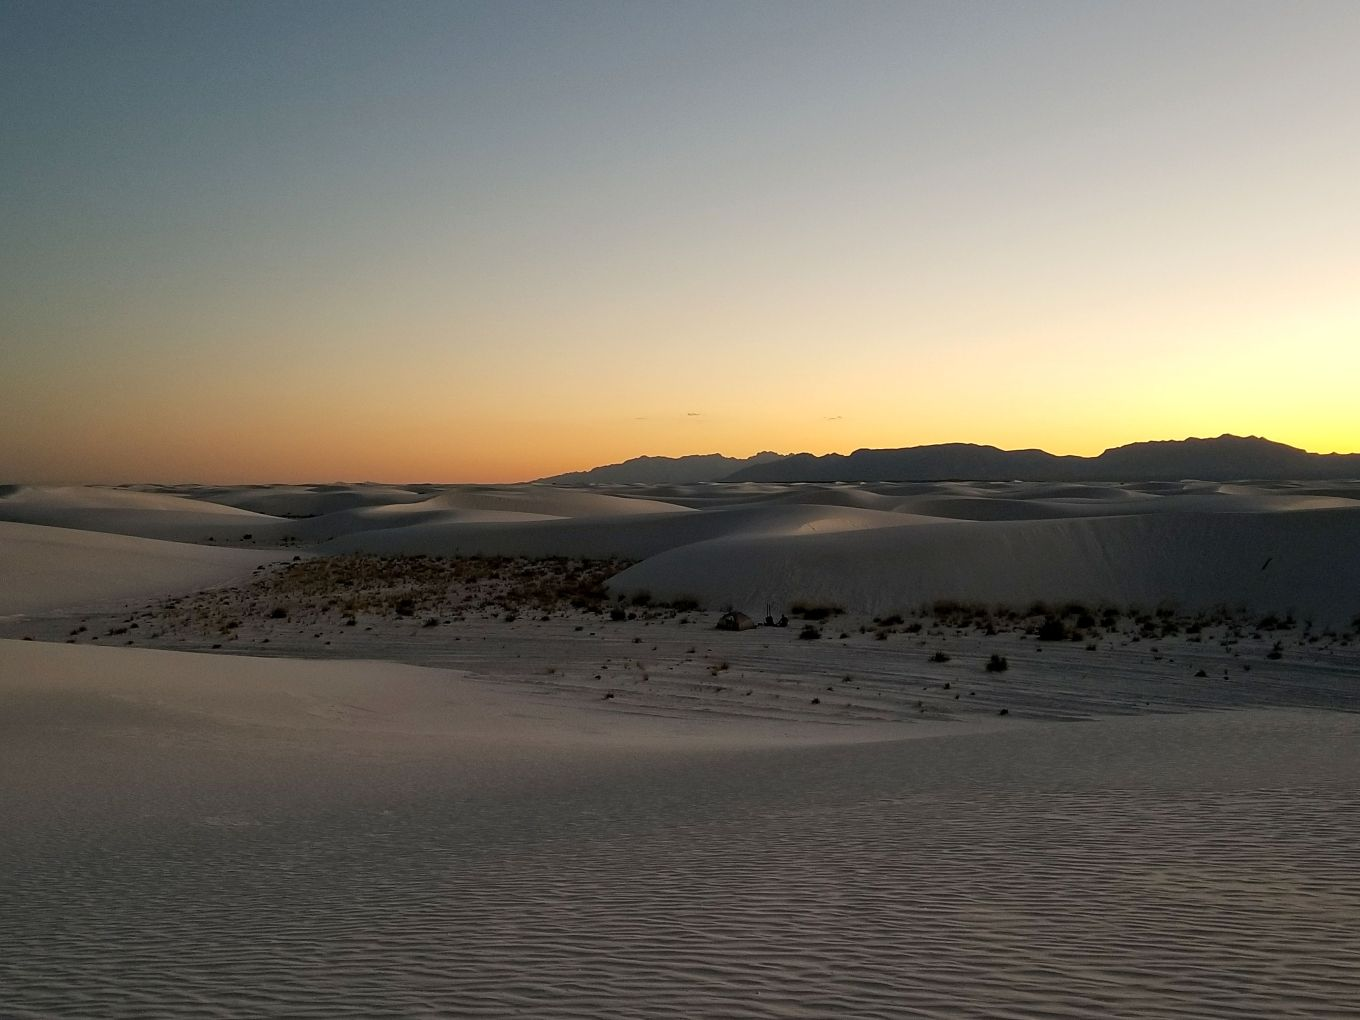 Rolling gypsum dunes, White Sands National Monument